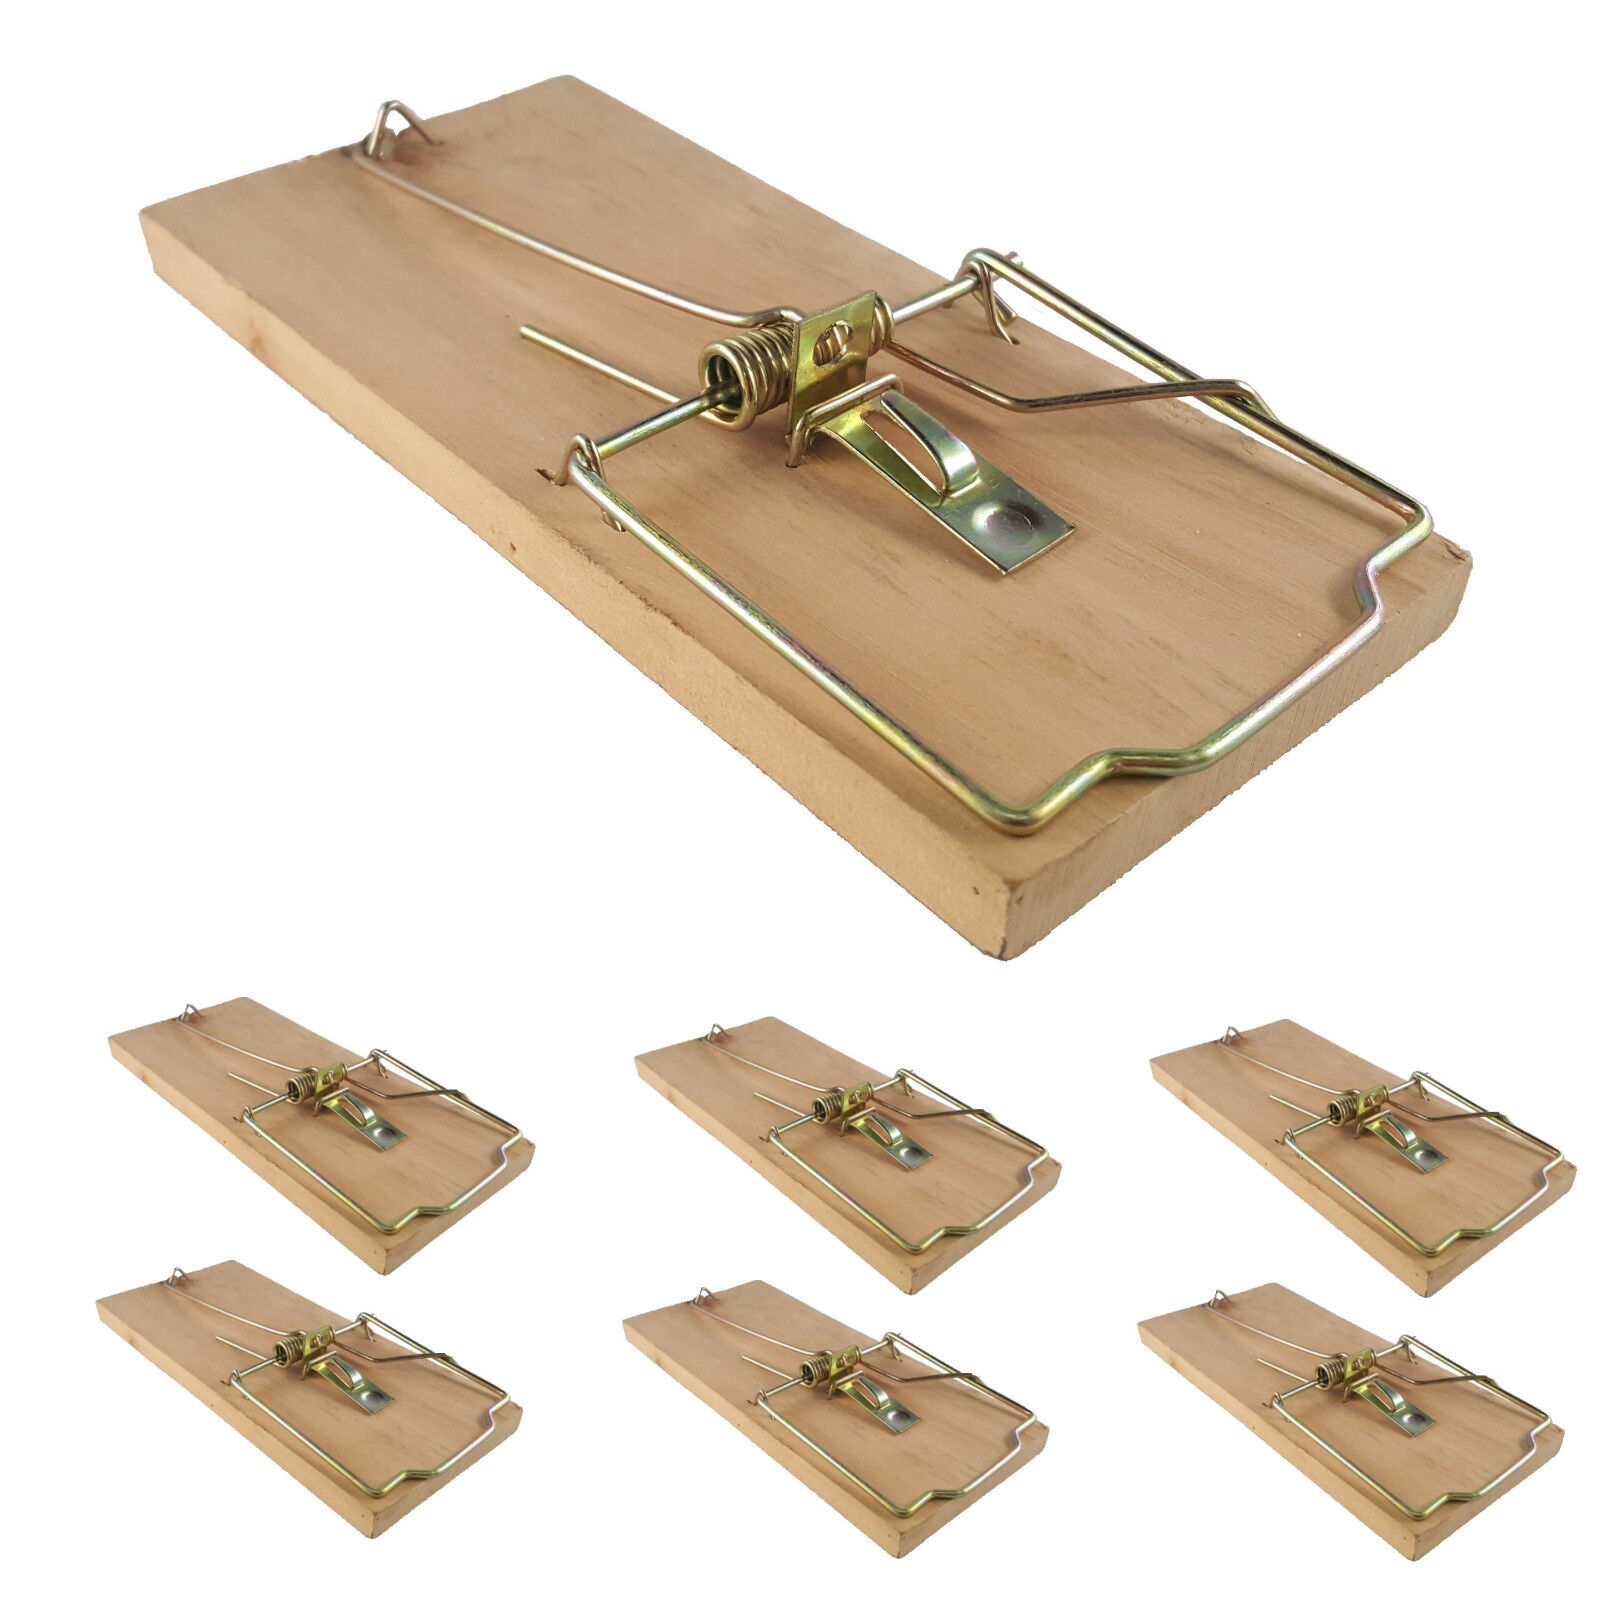 4x Extra Large Heavy Duty Quality Rat Trap Reusable Catching Mouse Rodent Pest